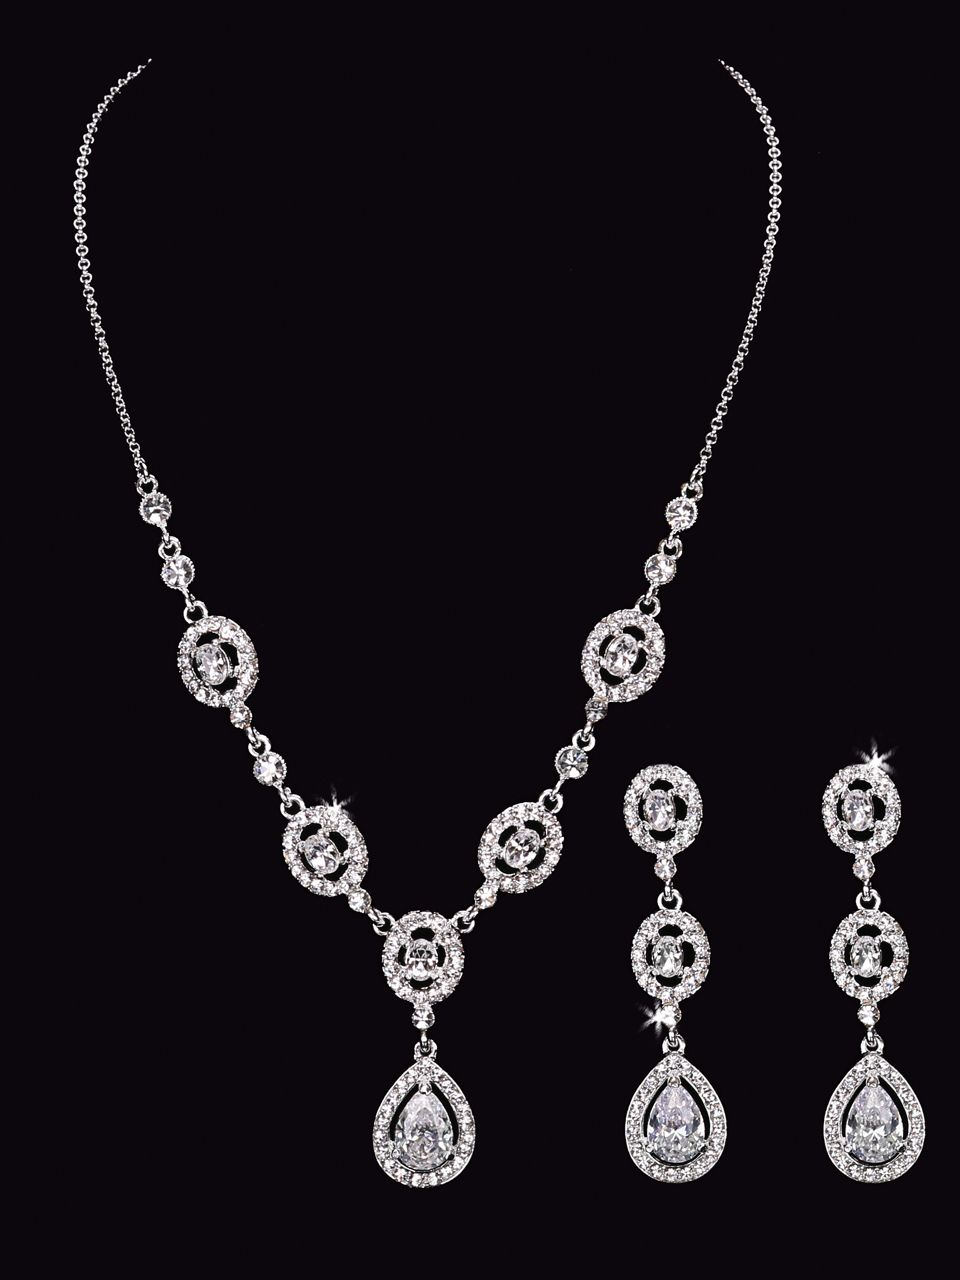 Rhinestone necklace with matching earrings bridal accessories